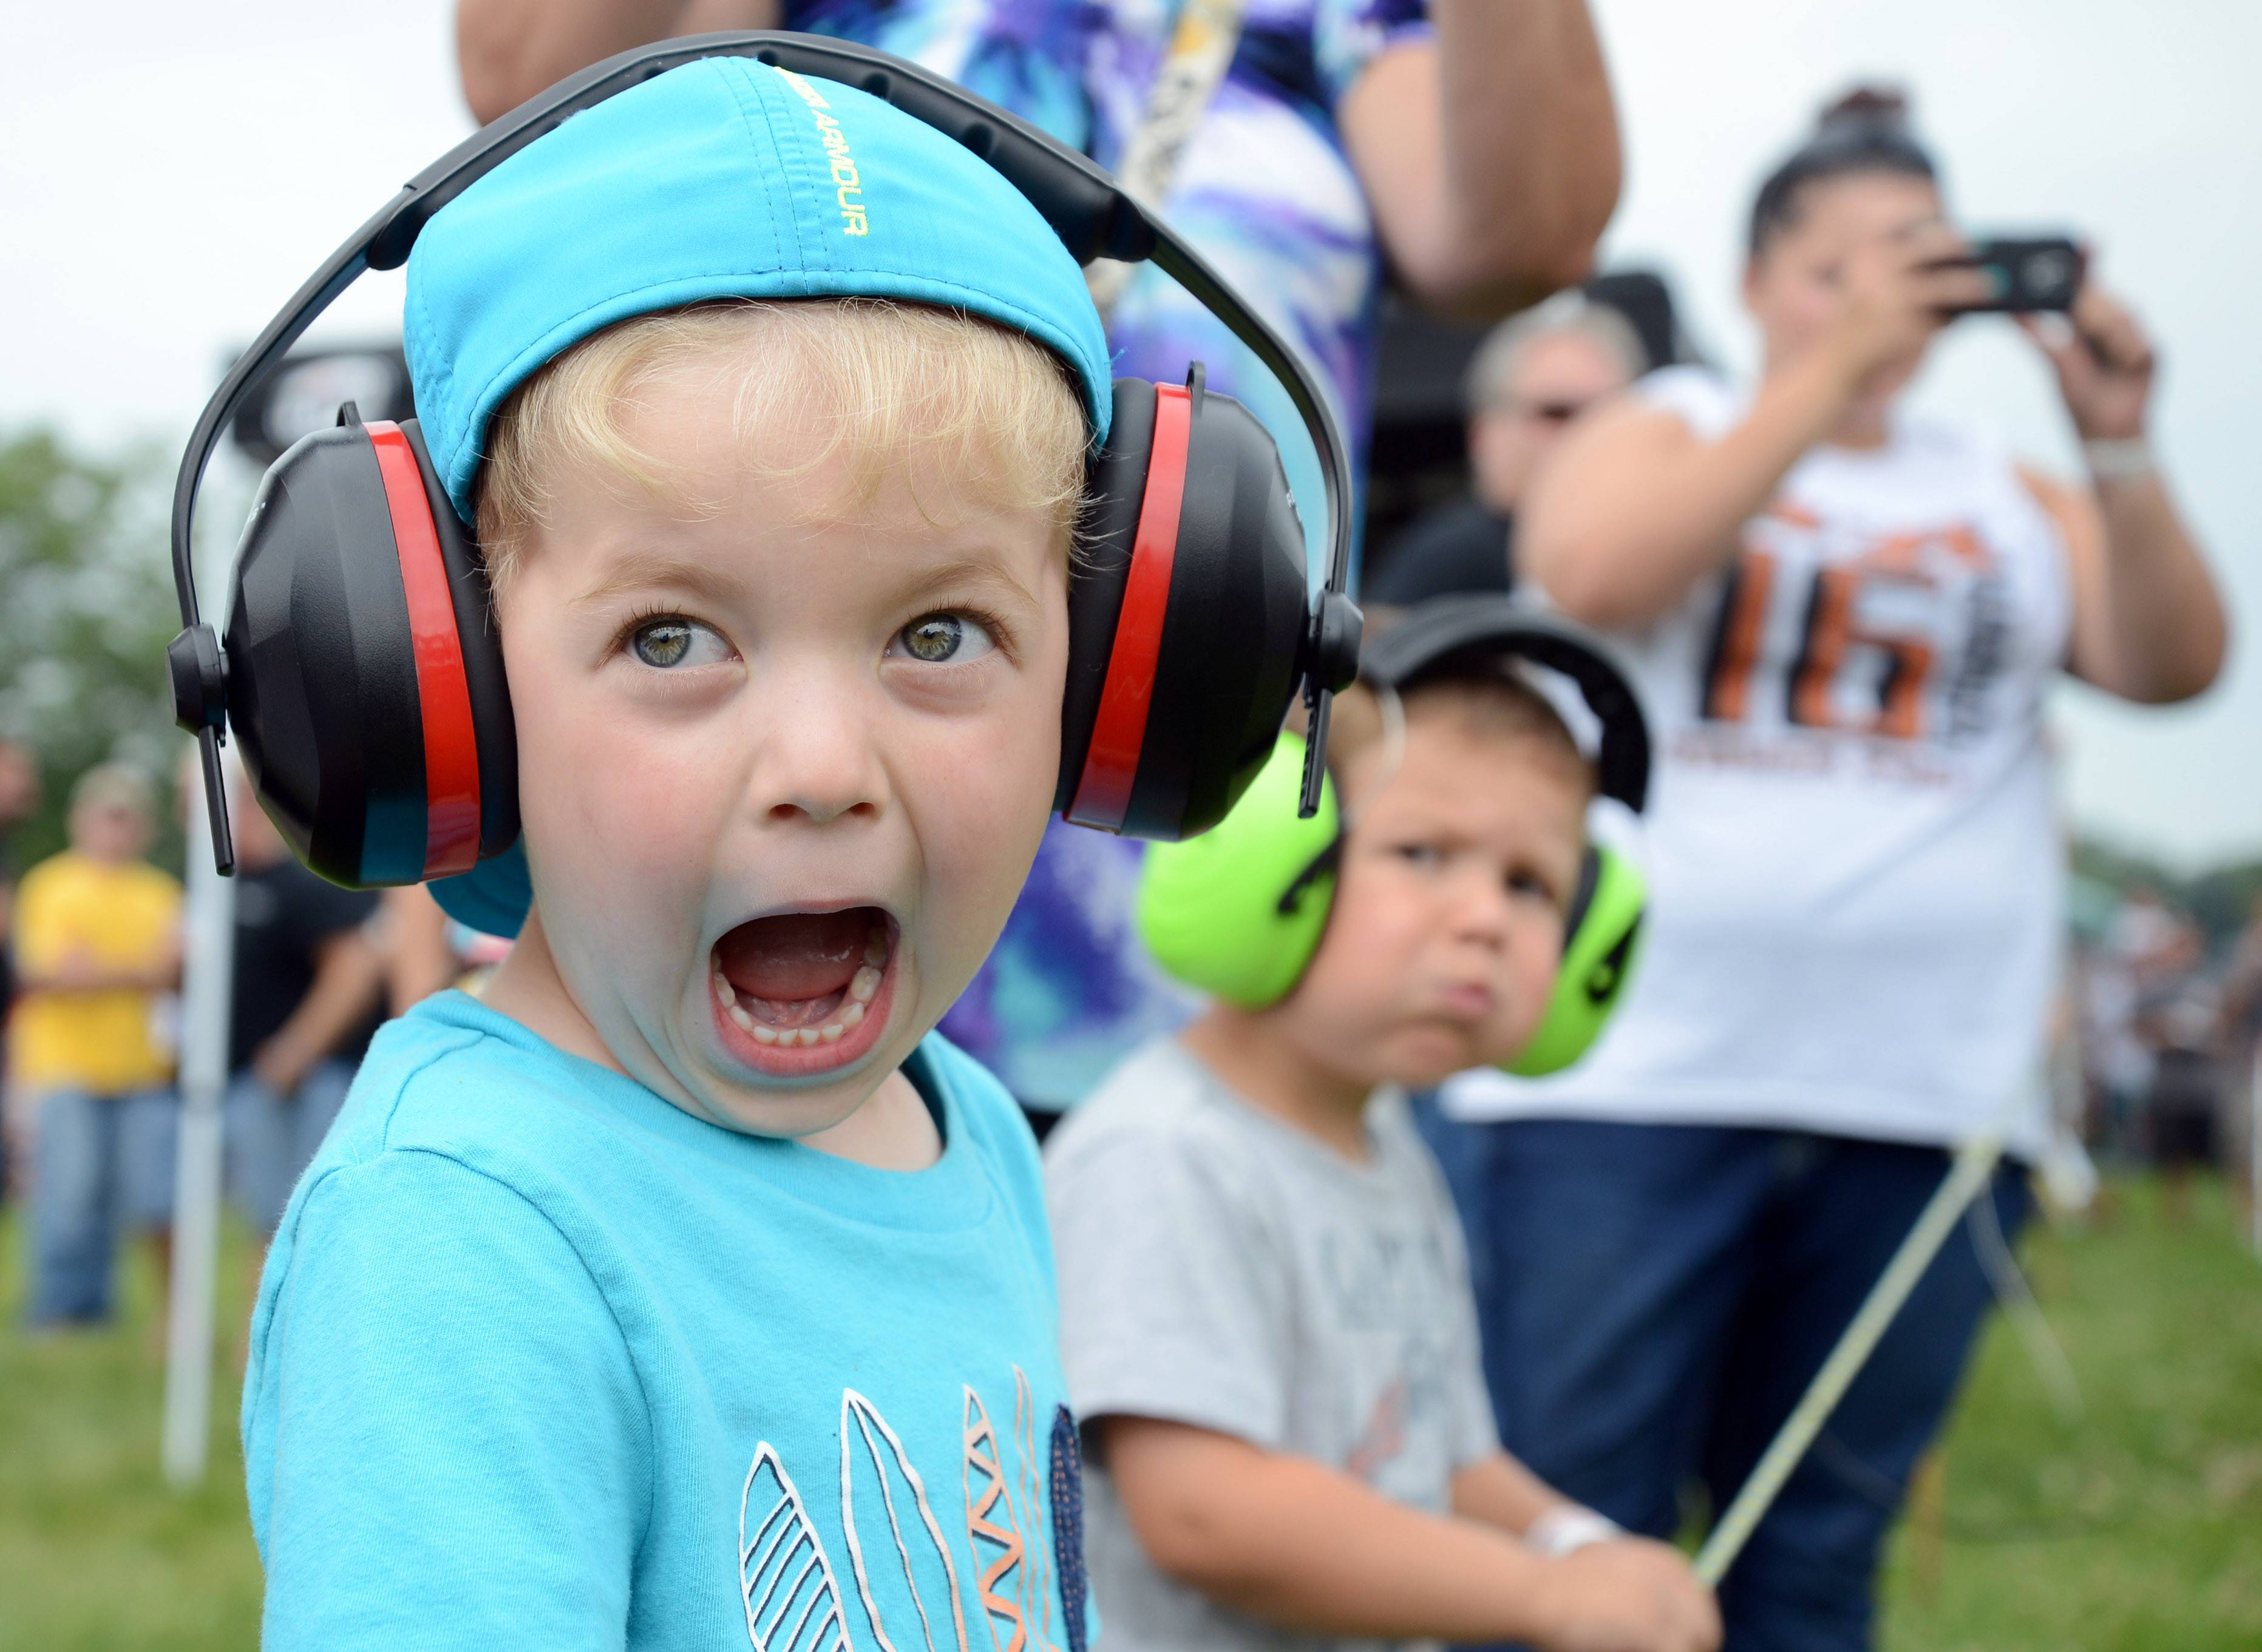 Rustin Angerola, 3, of Elburn, reacts as a truck in the 6,500 AS 4 x 4 class takes off from the starting line at the truck and tractor pull at Elburn Days Saturday. His friend and neighbor, Hayden Deutsch, 3, on right.